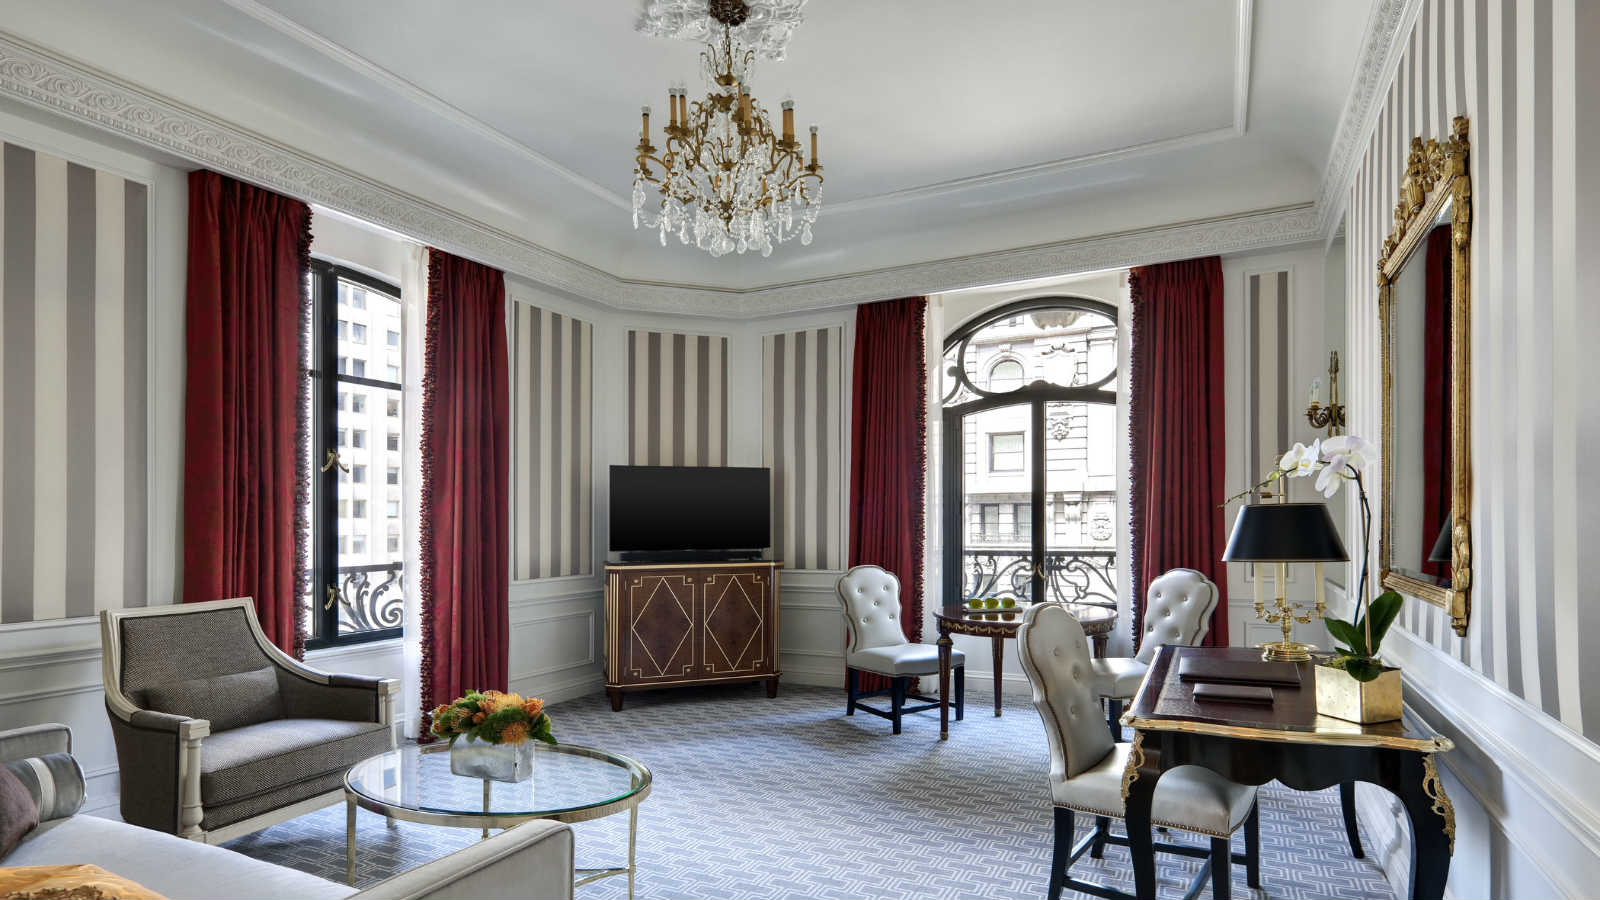 5th Avenue Suite